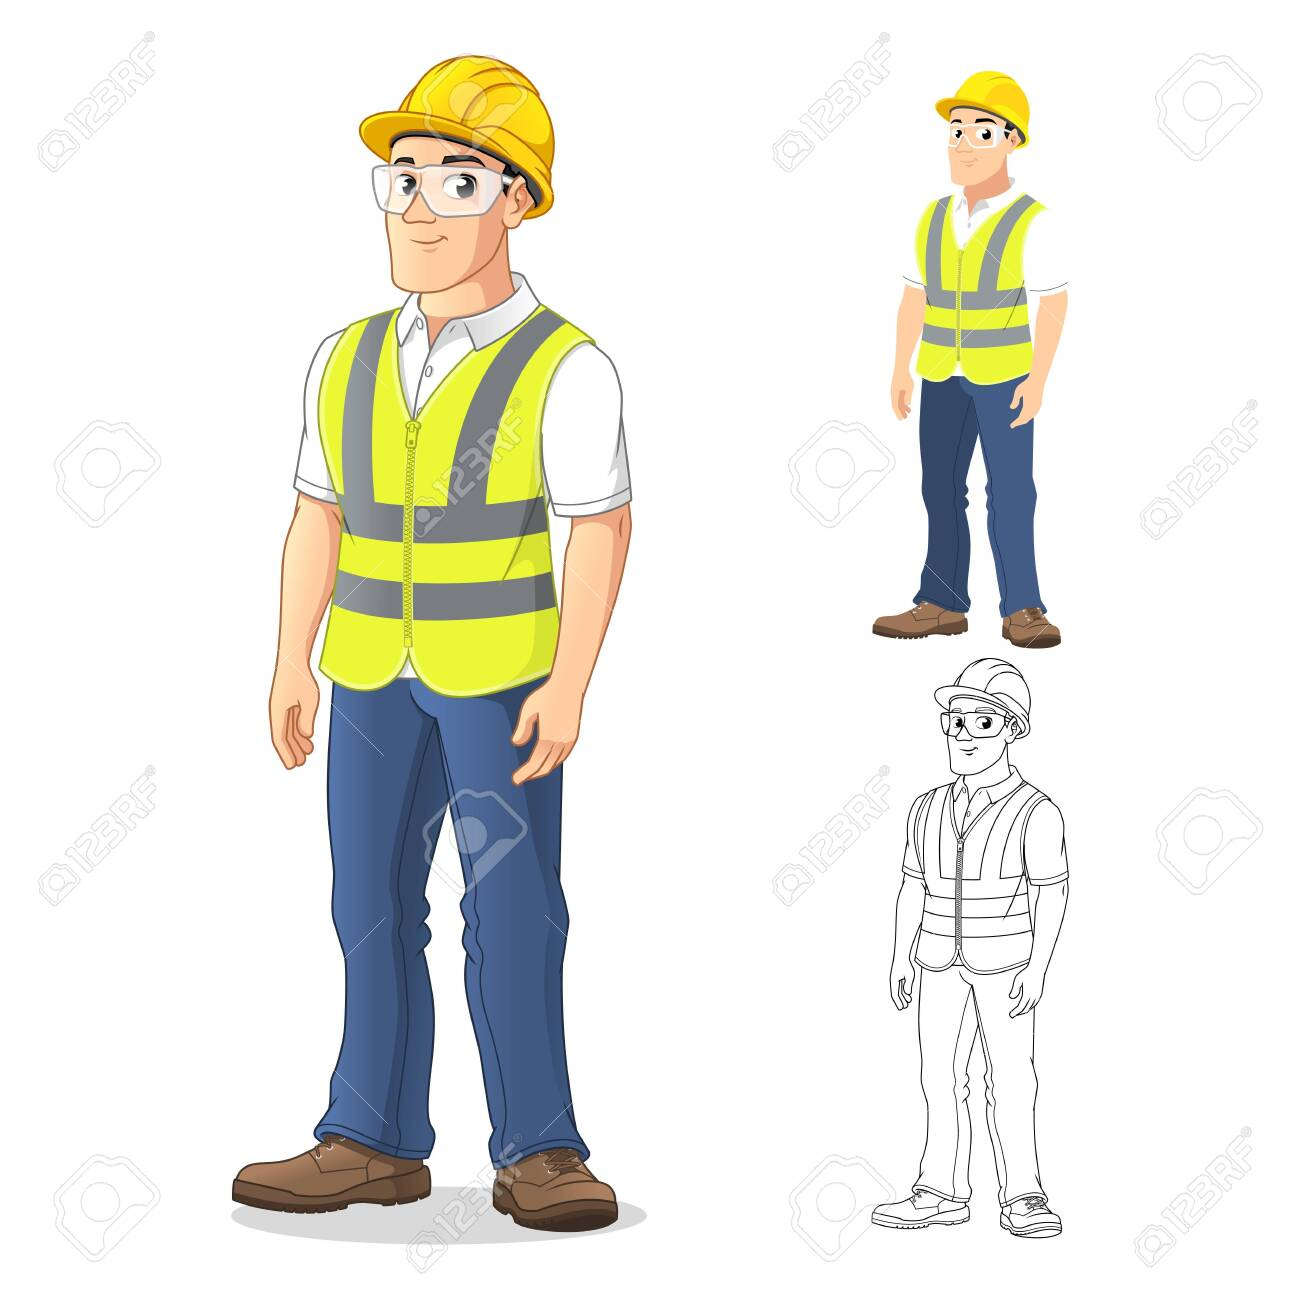 Man with Safety Gear Standing Straight, with His Arms by His Side, Cartoon Character Design, Including Flat and Line Art Designs, Vector Illustration, in Isolated White Background. - 128646044